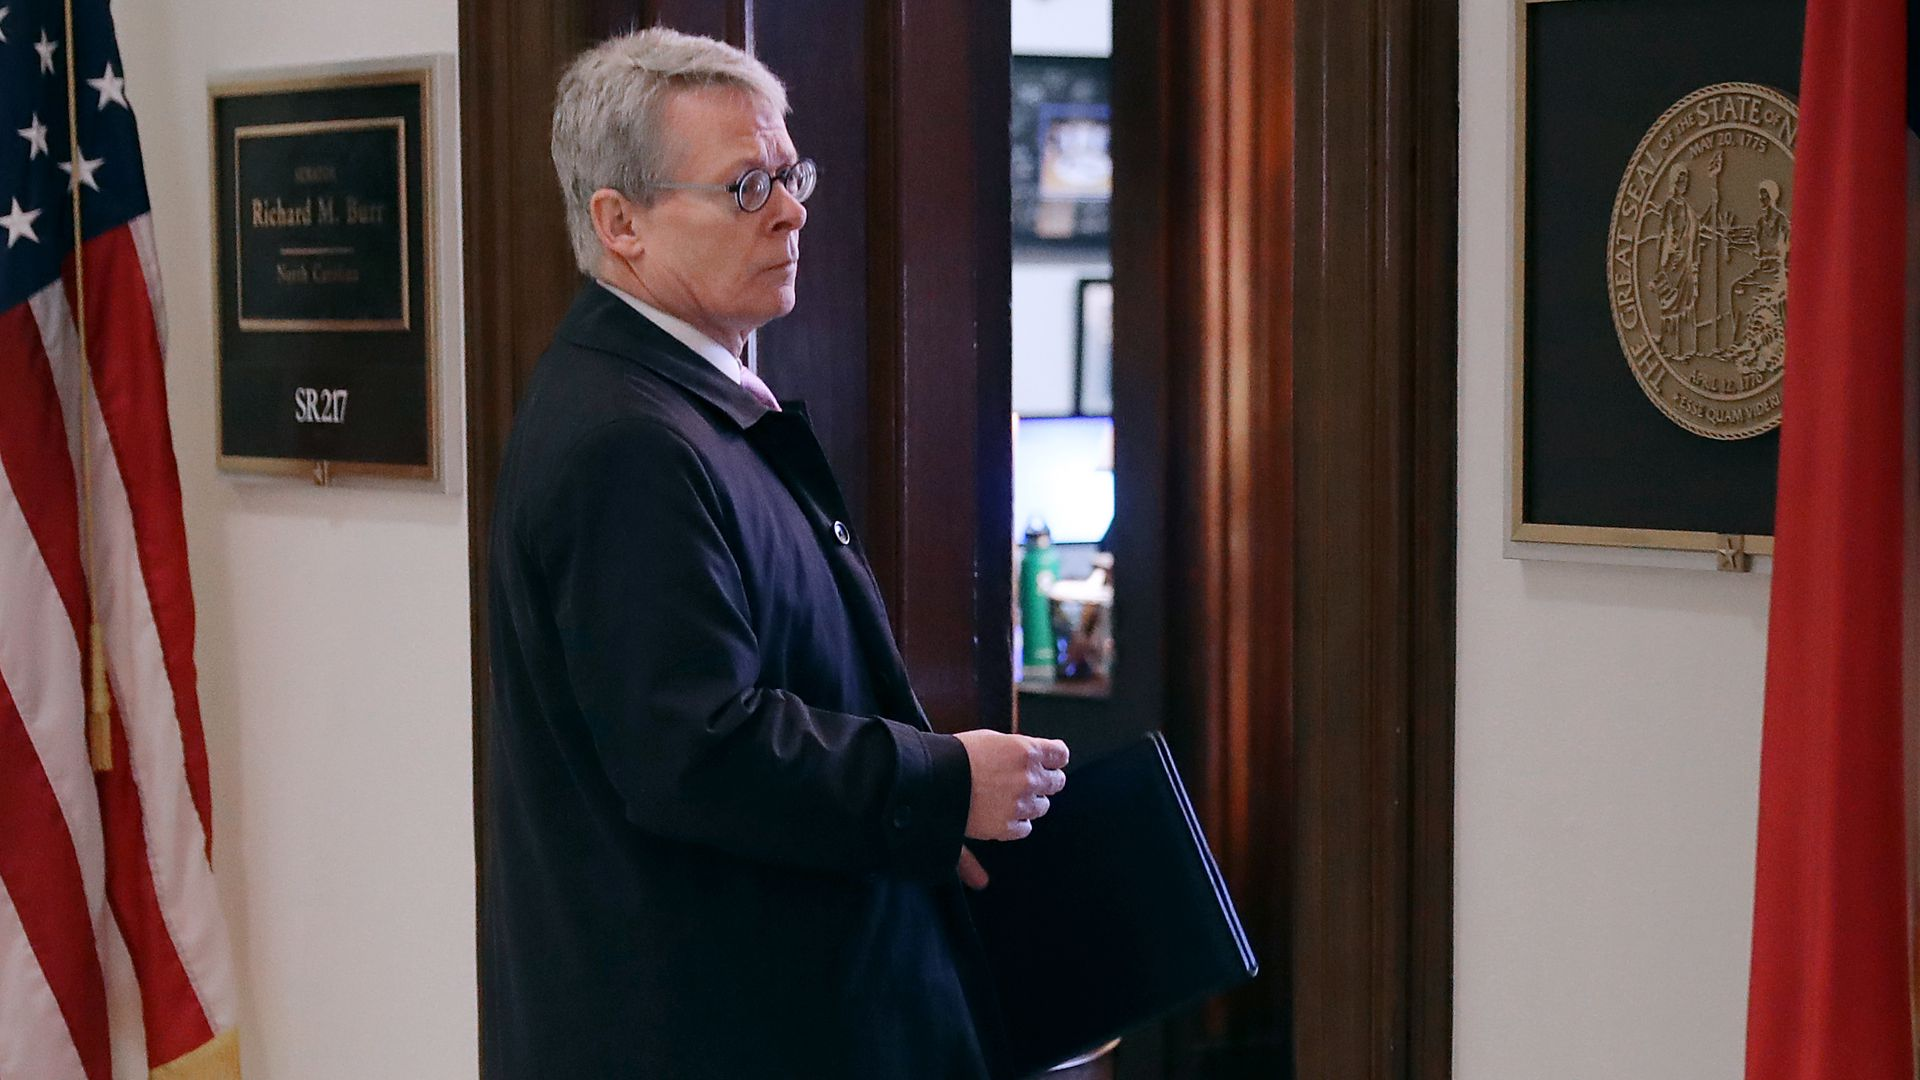 White House Counsel Emmet Flood walks into the offices of Senate Intelligence Committee Chairman Richard Burr (R-NC) on Capitol Hill January 09, 2019 in Washington, DC.